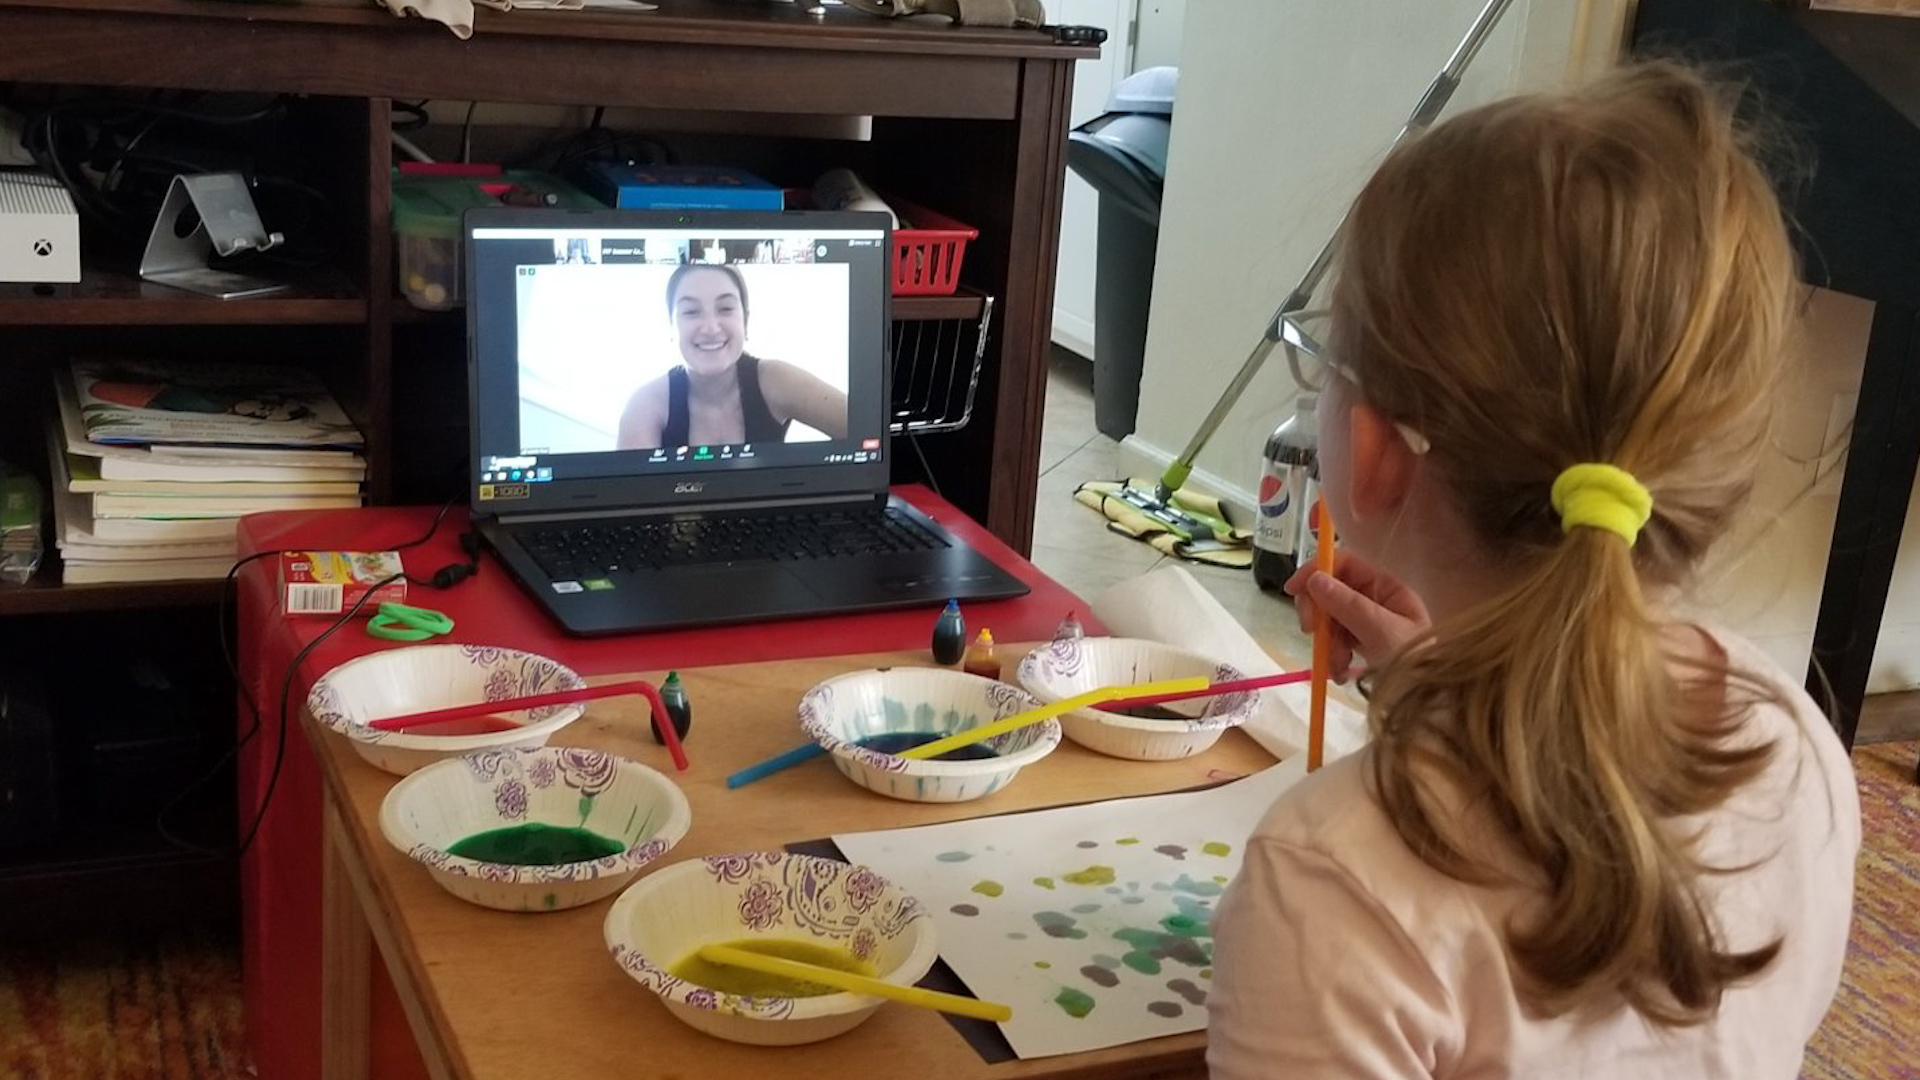 Synchrony Financial launched a virtual summer camp to keep its employees' children busy.